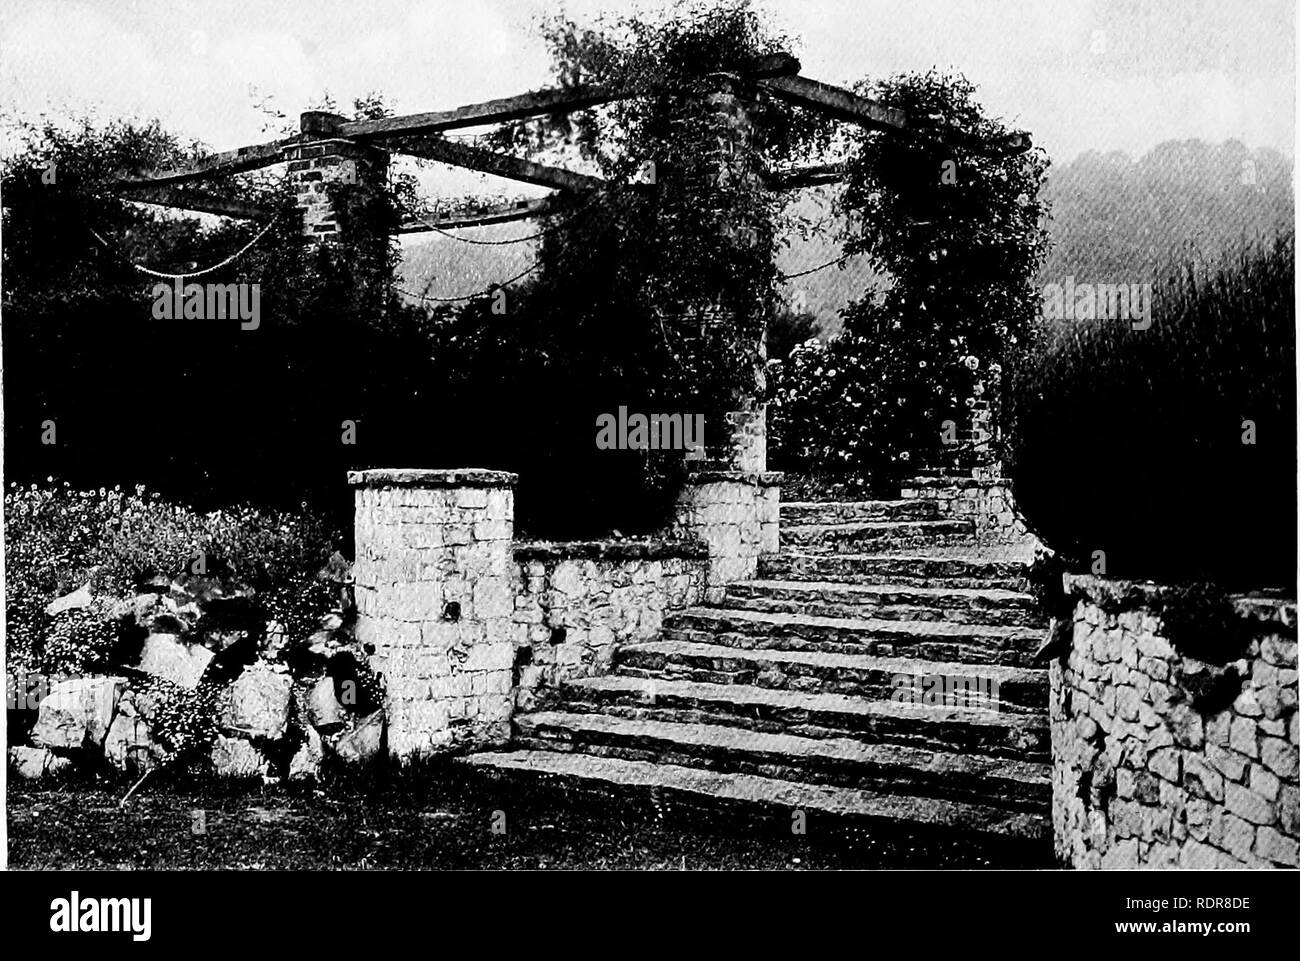 . Gardens for small country houses . Gardens, English. i84 Gardens for Small Country Houses.. FIG. 261.—PIERS OF BRICK AND STONE.. Please note that these images are extracted from scanned page images that may have been digitally enhanced for readability - coloration and appearance of these illustrations may not perfectly resemble the original work.. Jekyll, Gertrude, 1843-1932; Weaver, Lawrence, Sir, 1876-. London : Published at the offices of Country Life . .. and by George Newnes . .. ; New York : Charles Scribner's Sons - Stock Image